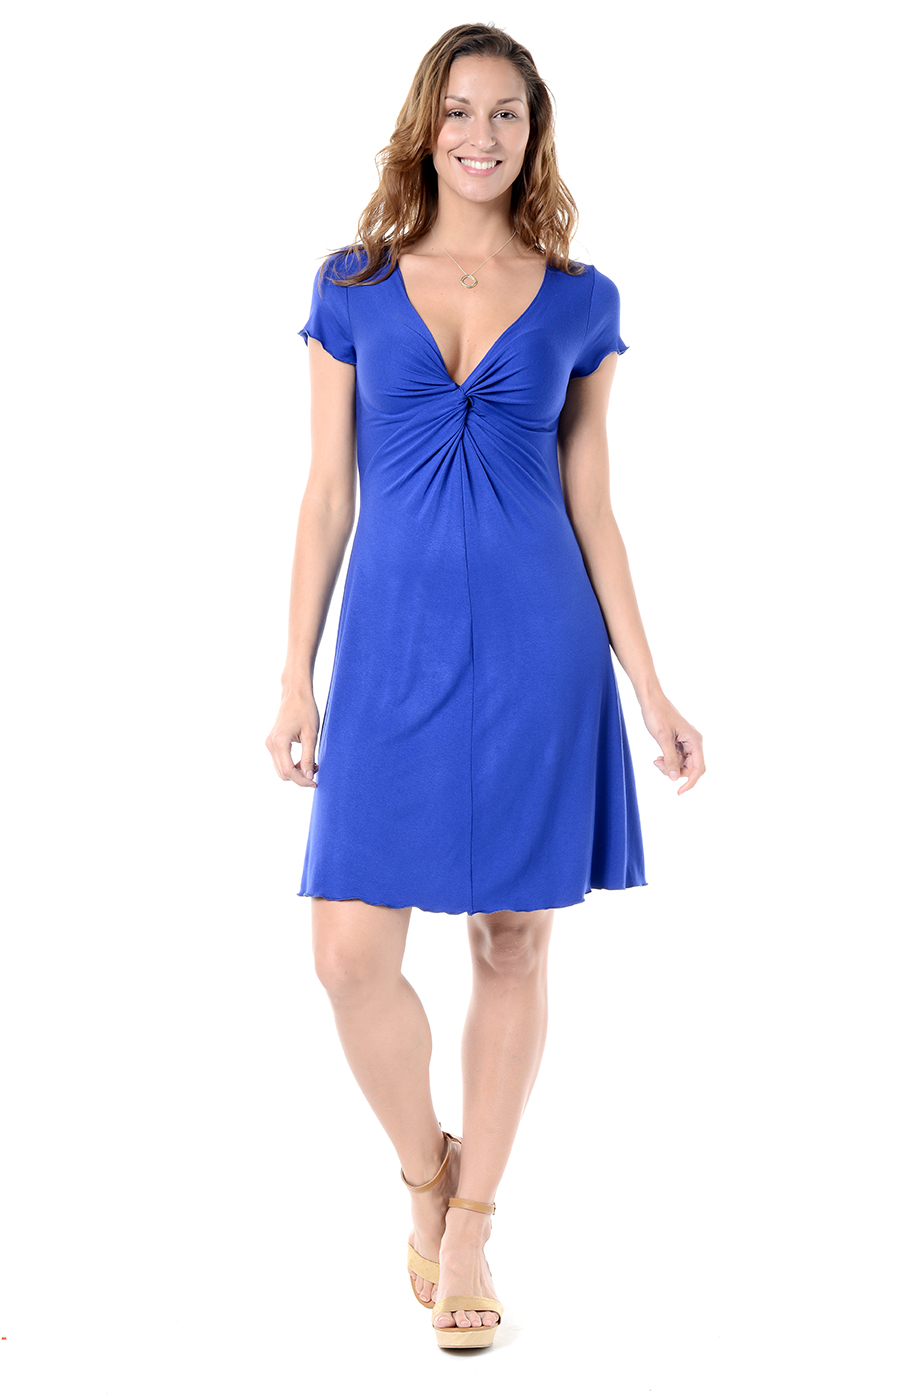 Large Size Maternity Clothes